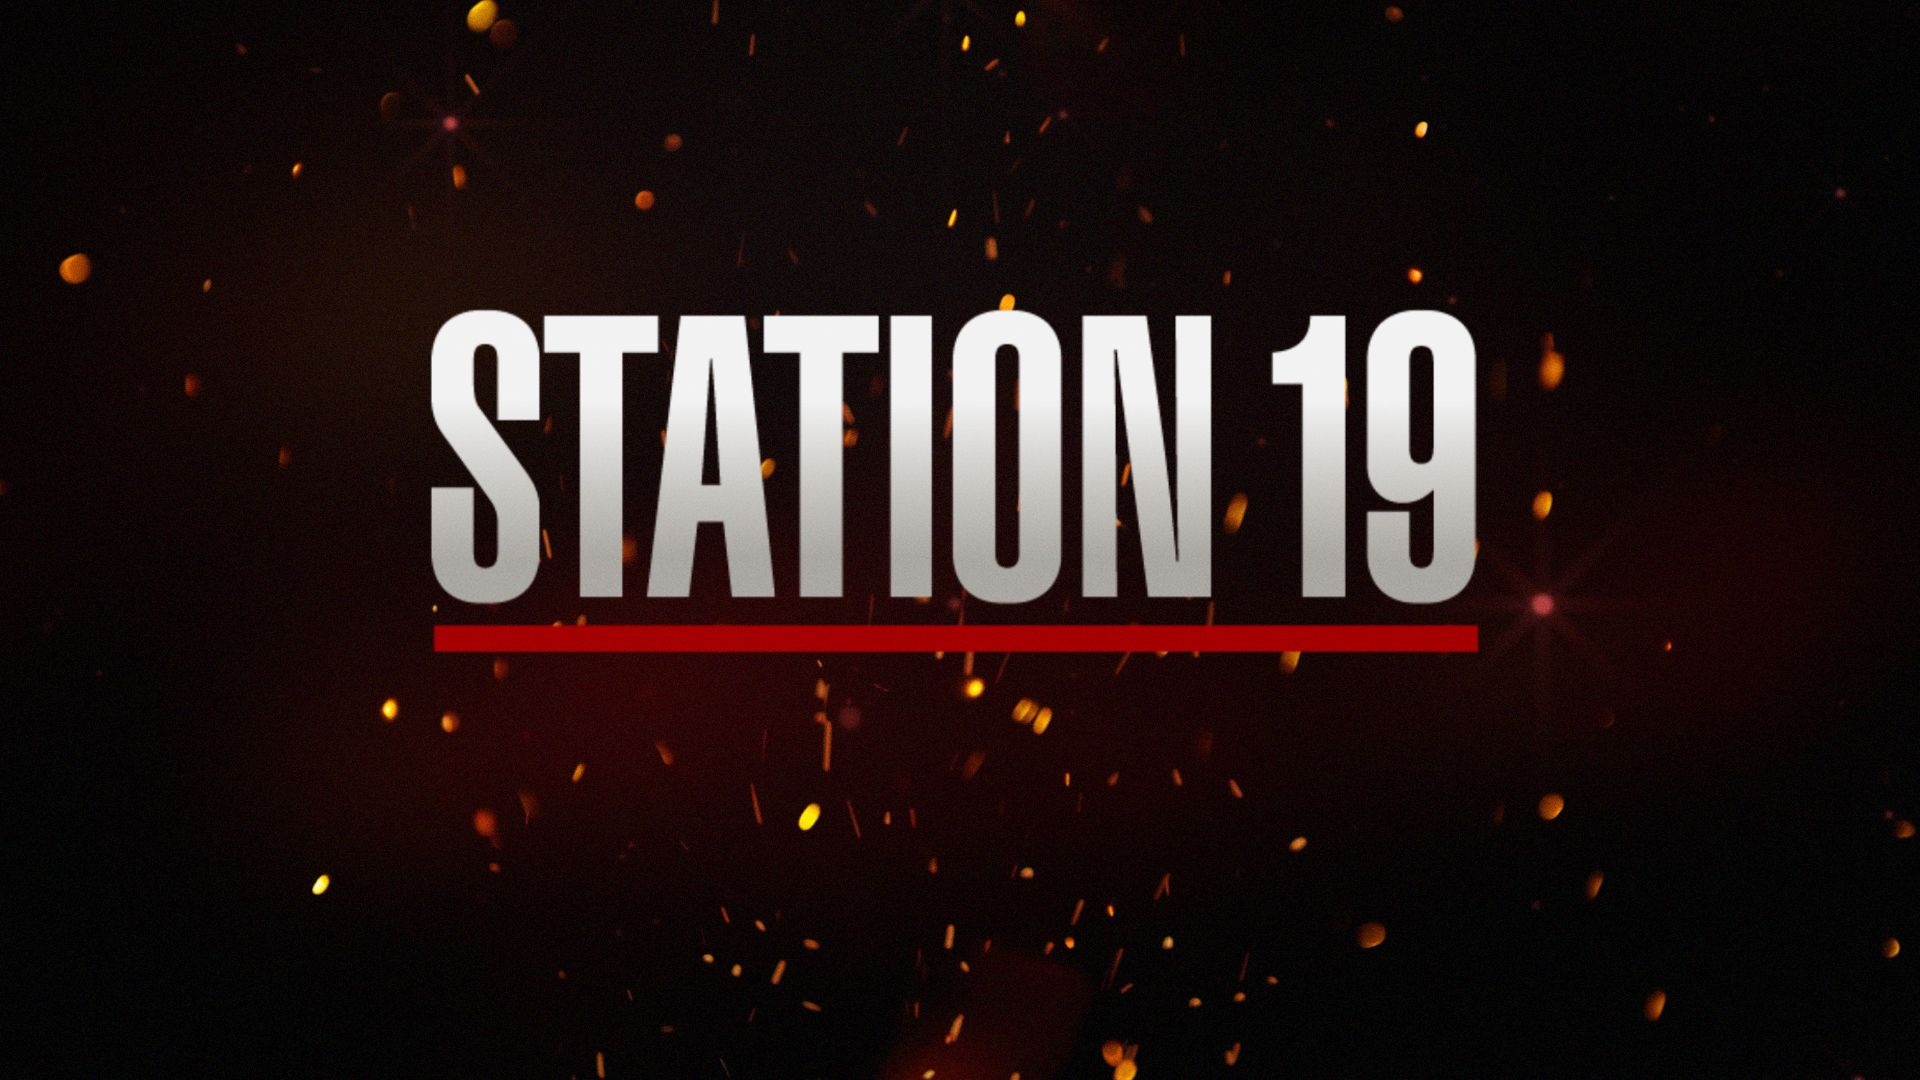 Station 19 (2×17) Into the Wildfire Review